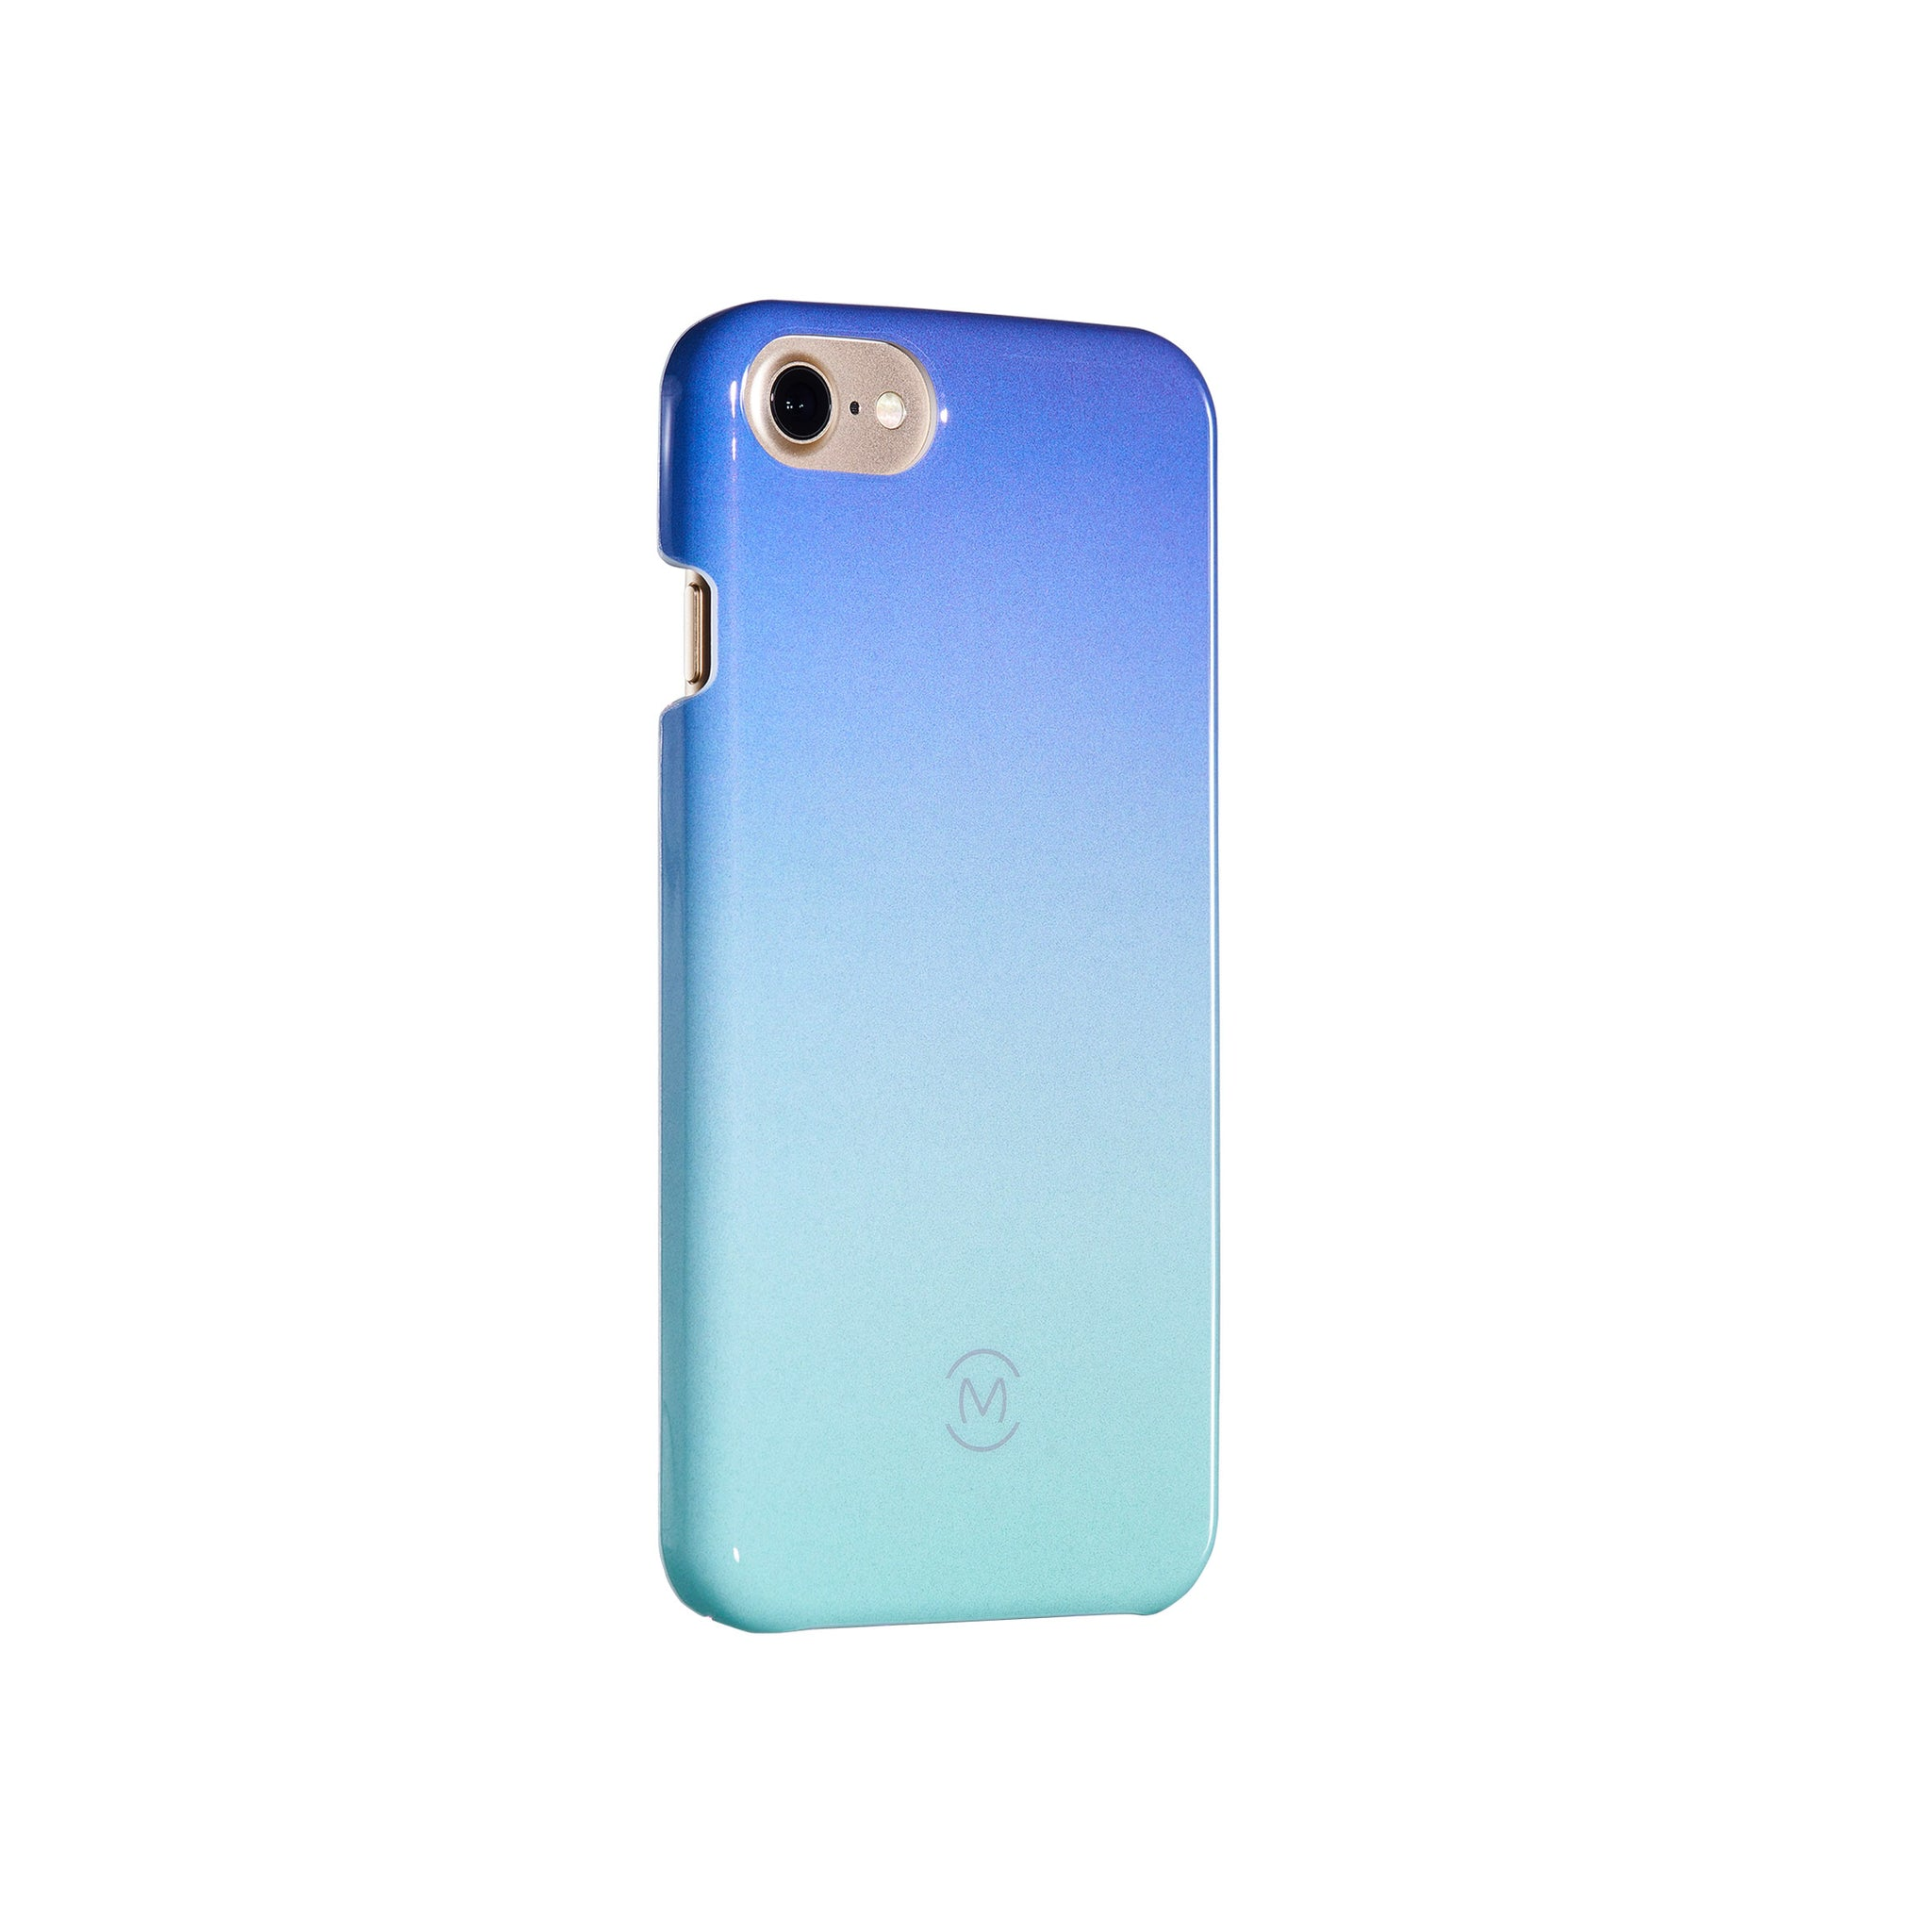 reputable site 4f73a b146e Blue-Turquoise Gradient Blue Atoll Recyclable Phone Case by Movement ...